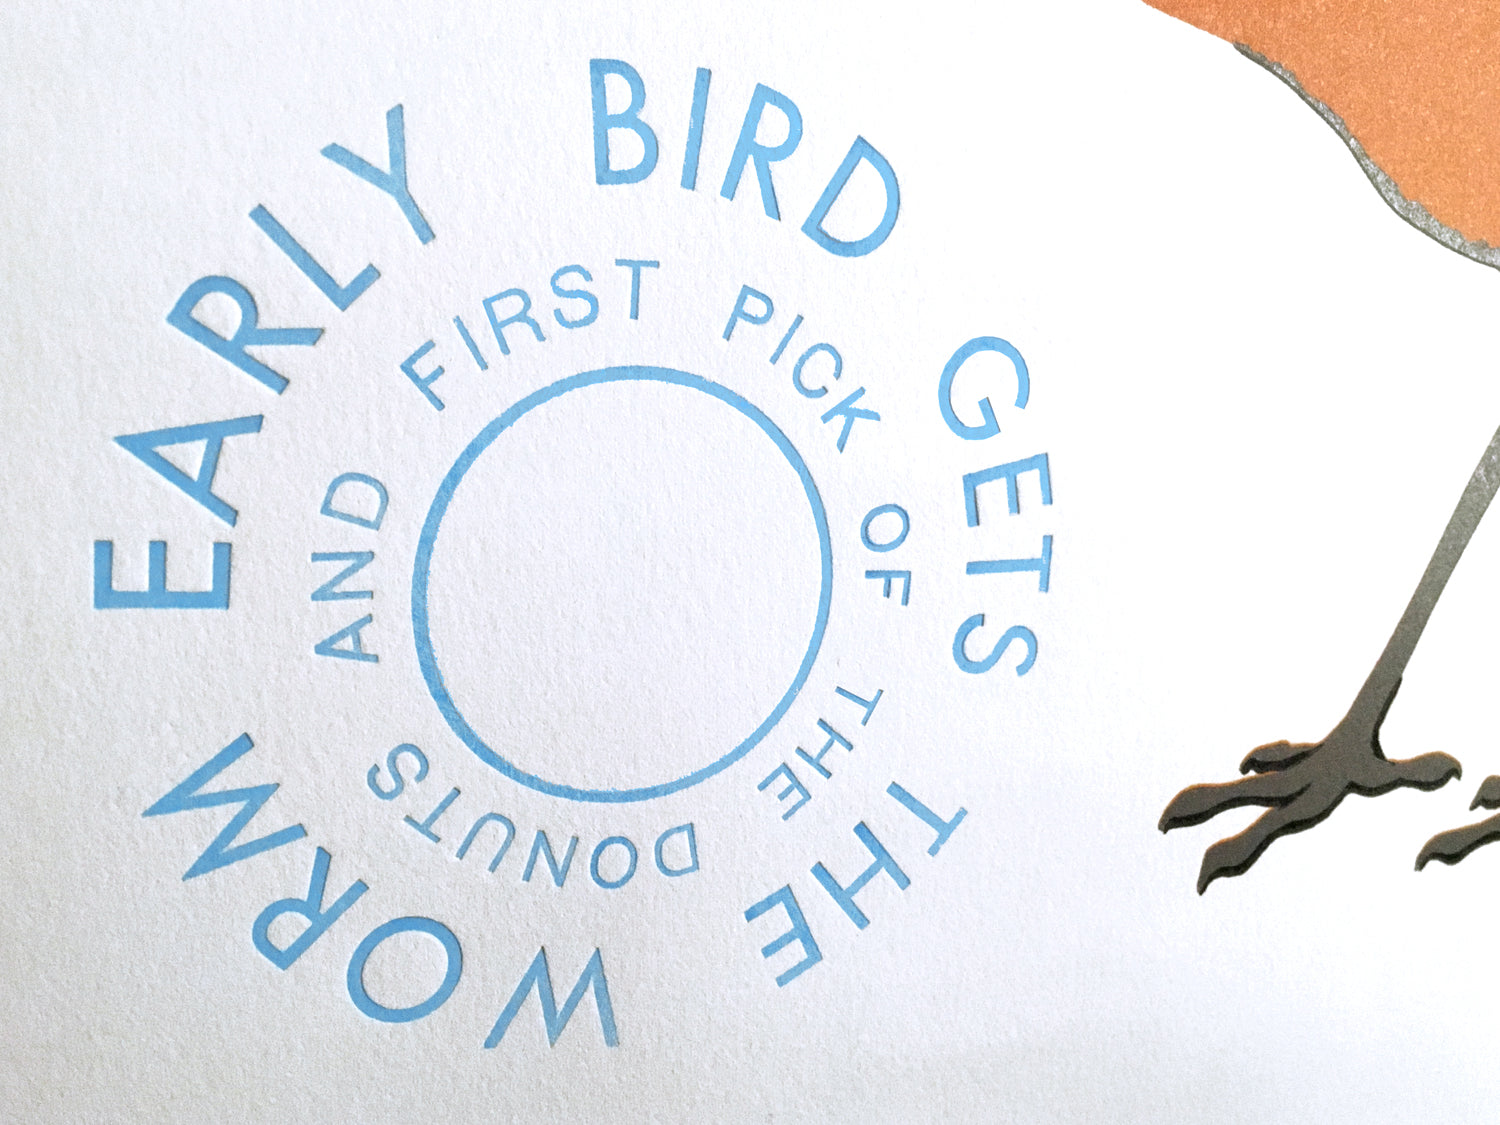 "detail of the text that reads: EARLY BIRD GETS THE WORM AND FIRST PICK OF THE DONUTS"" the detail also shows the impression the text made in to the soft paper it was printed on"